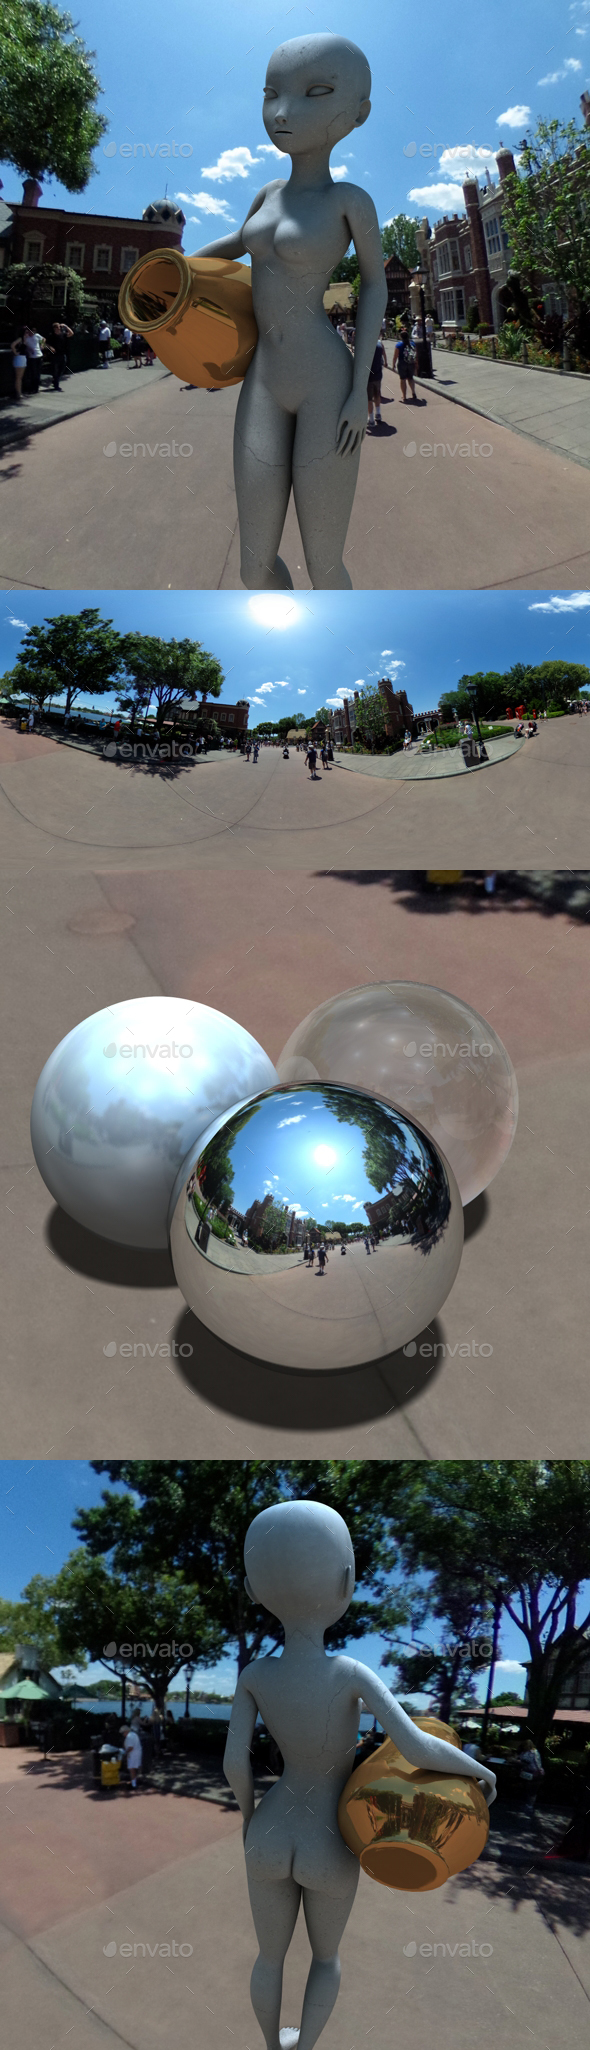 British Themed Street HDRI - 3DOcean Item for Sale